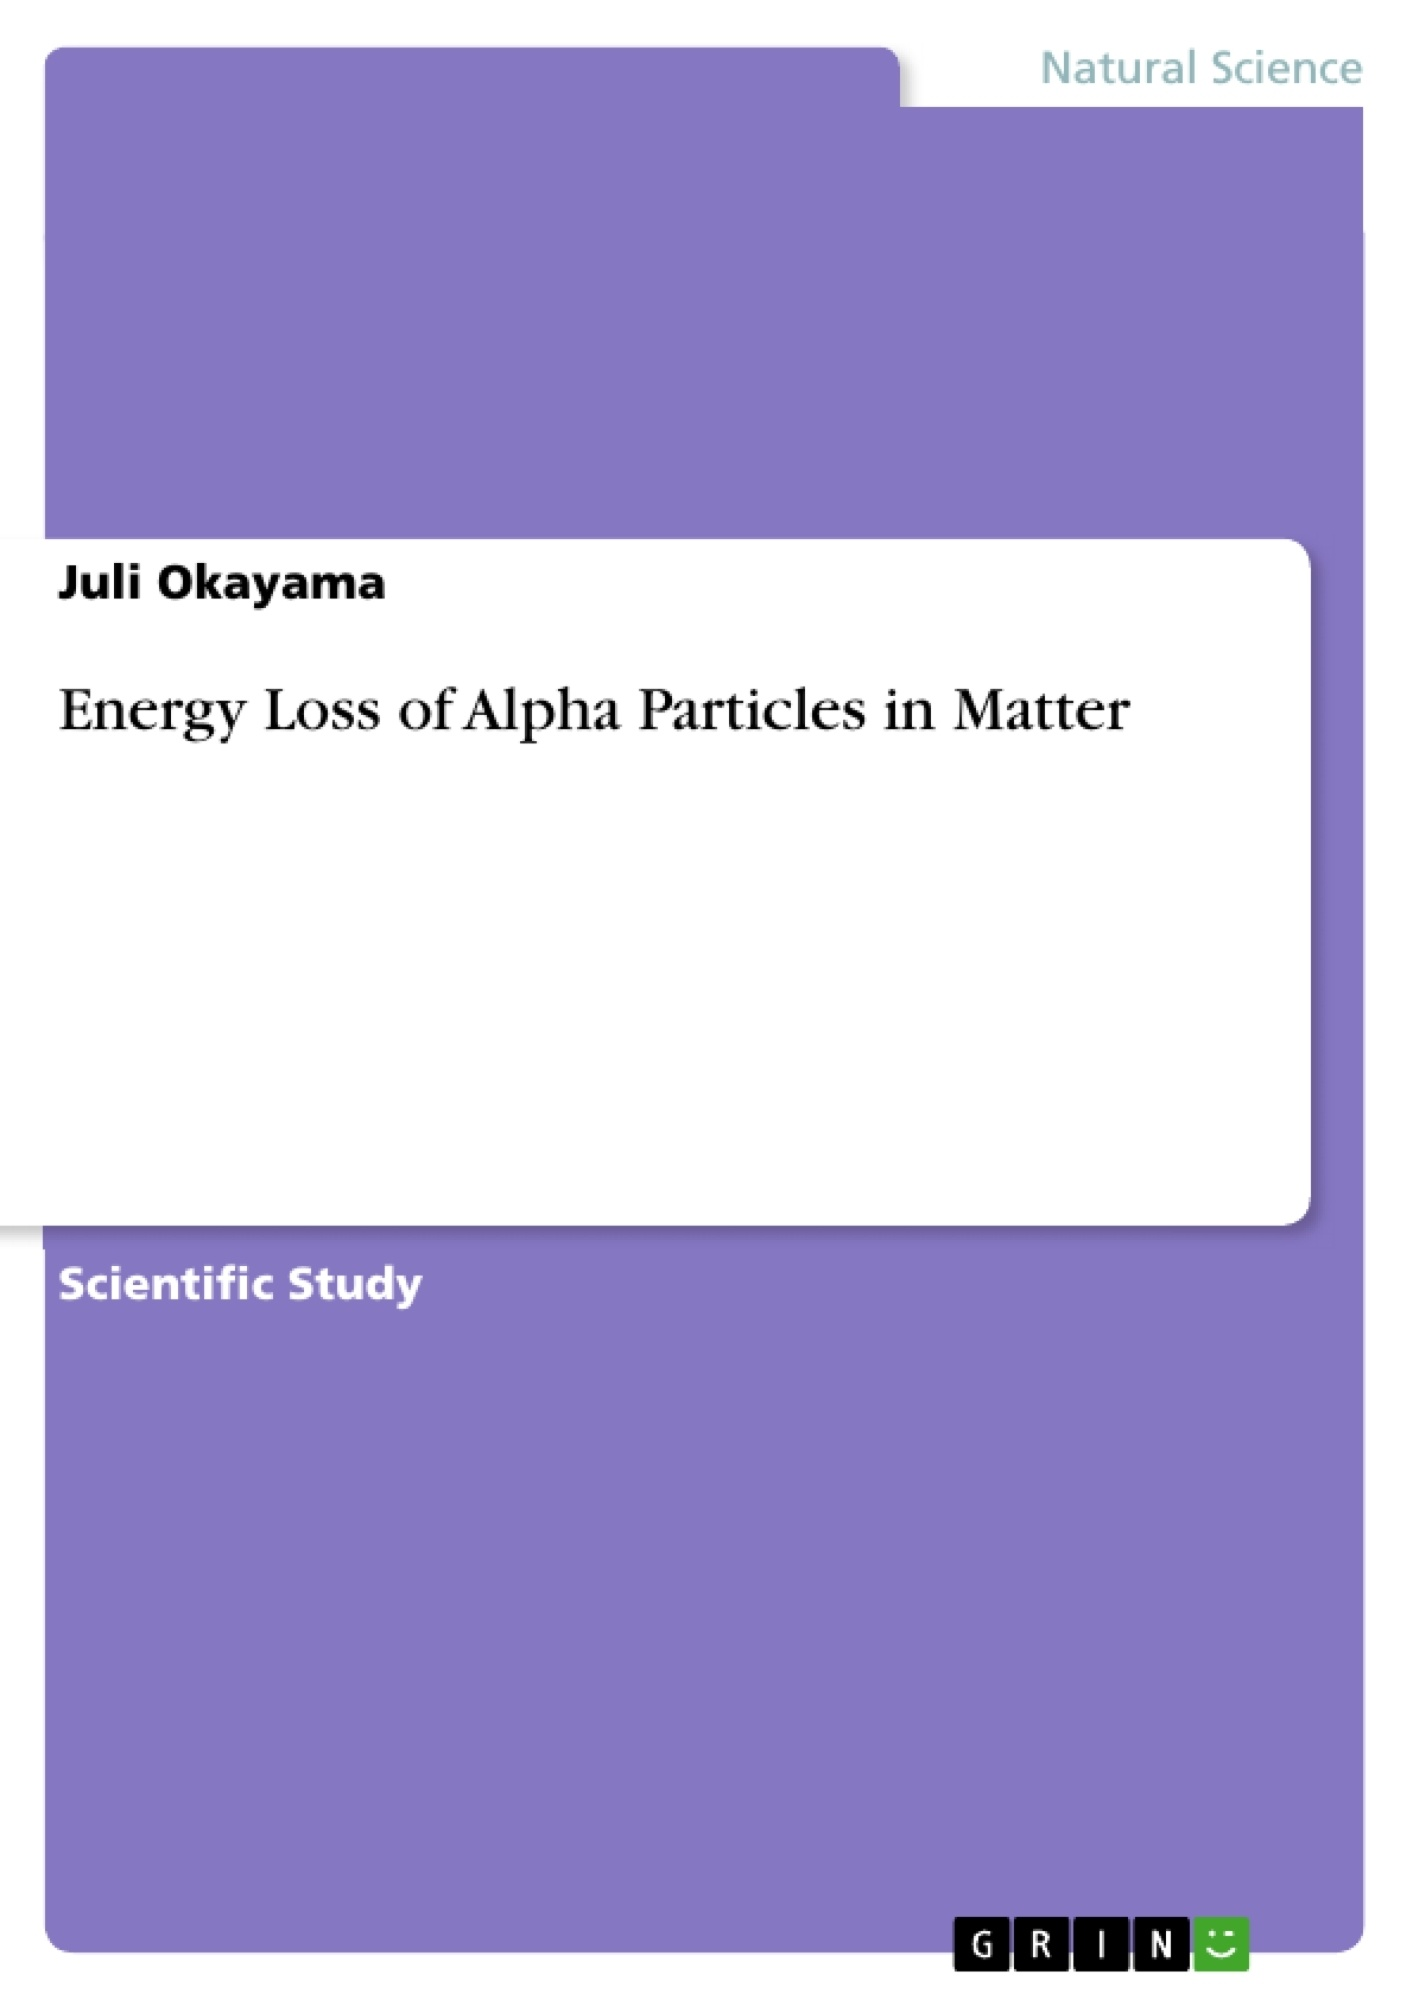 Title: Energy Loss of Alpha Particles in Matter